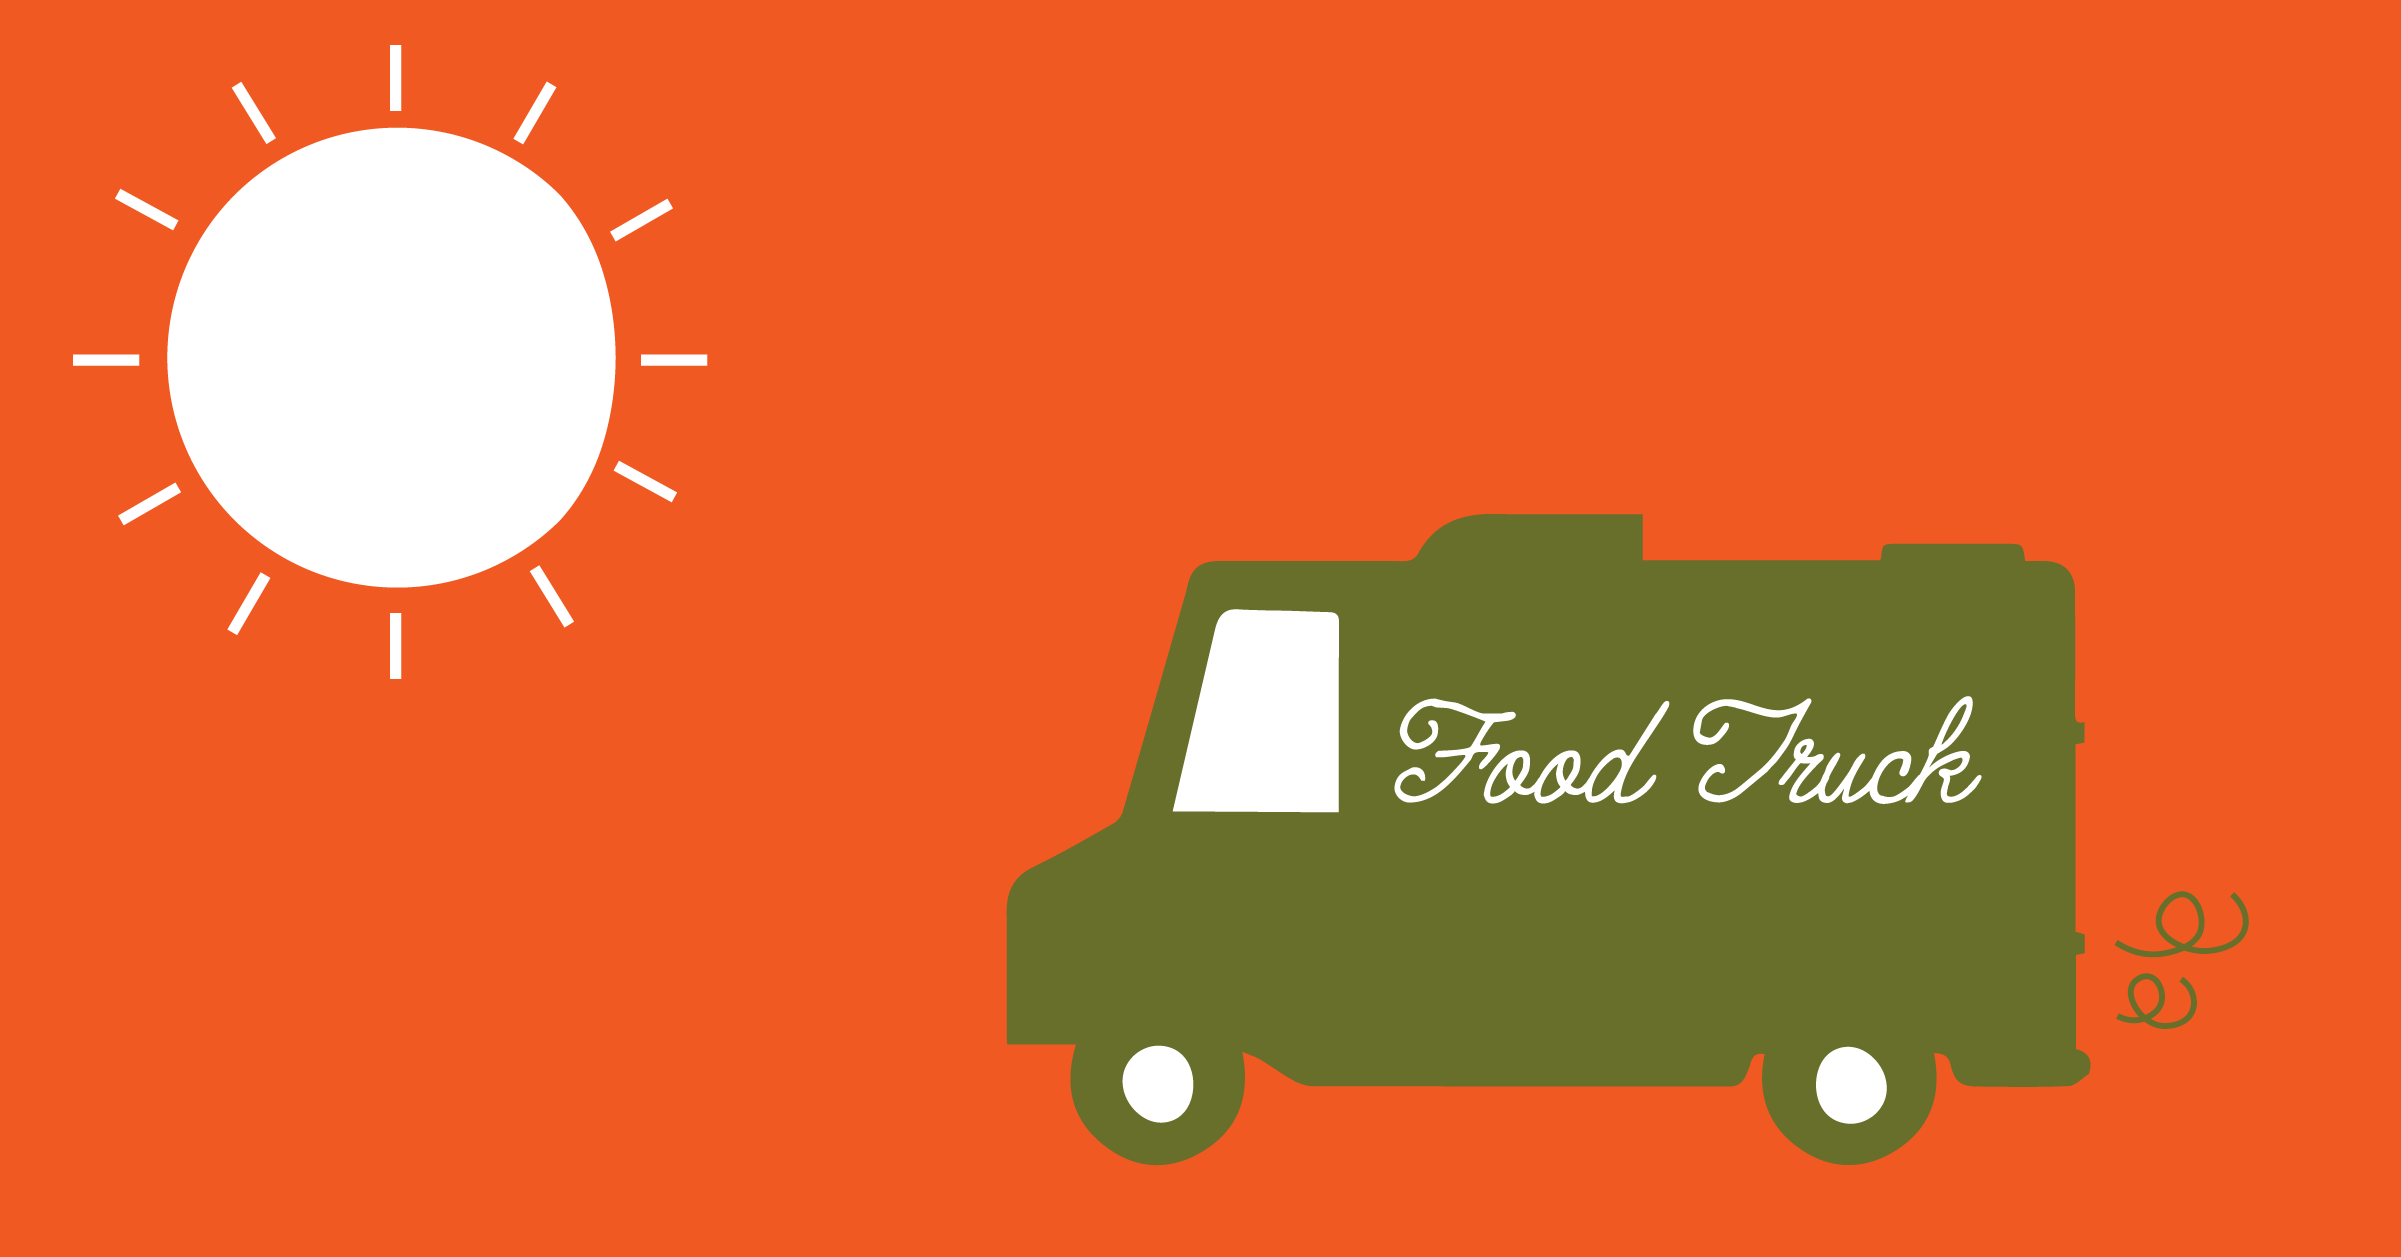 FB food truck@2x.png